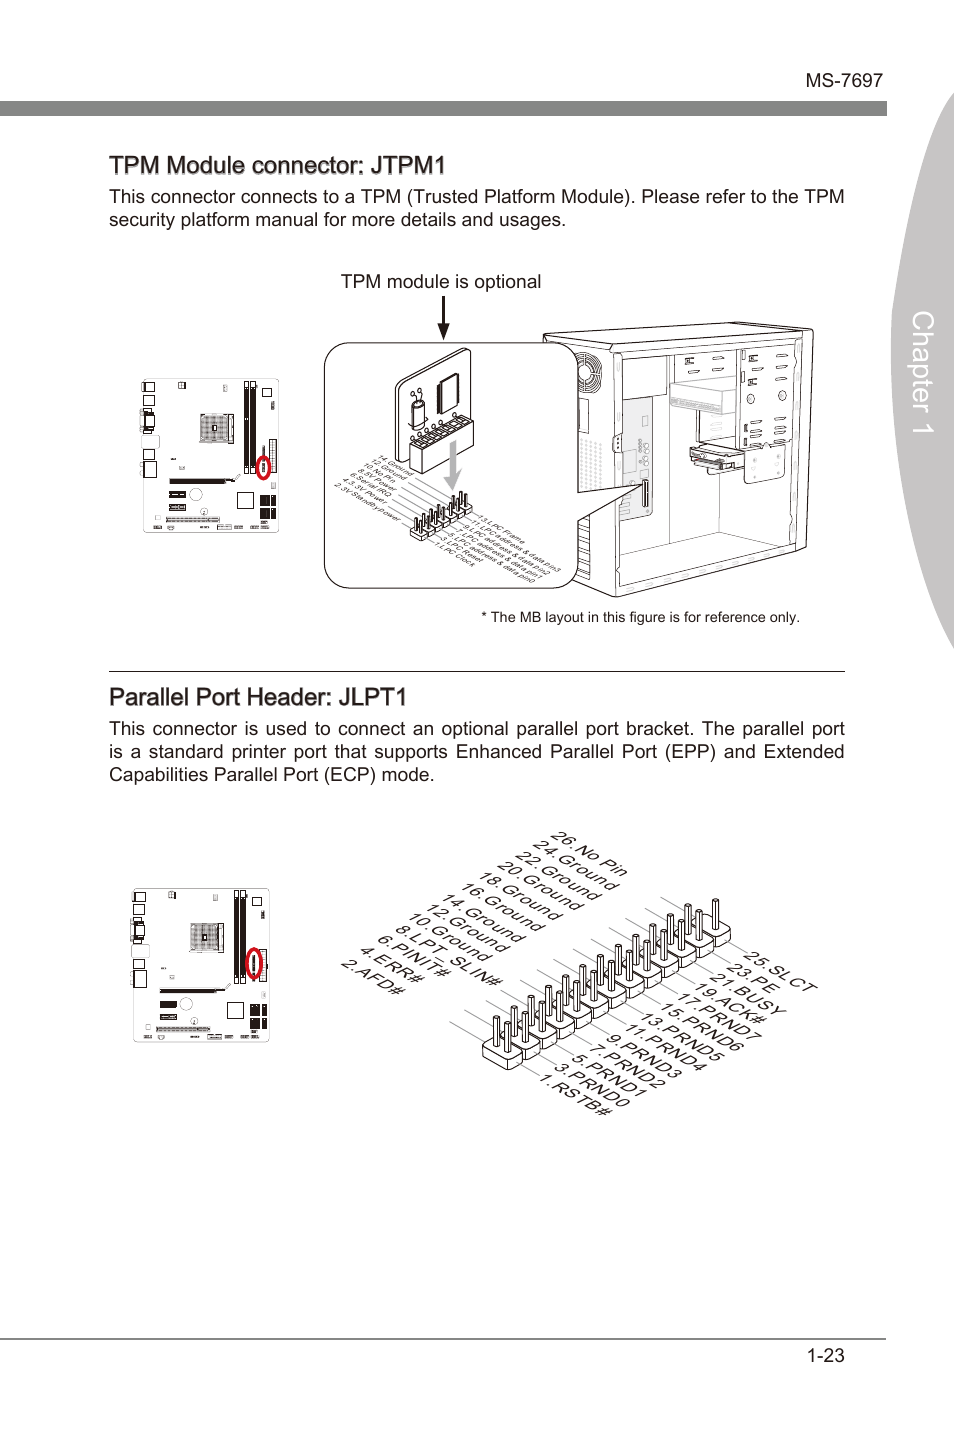 hight resolution of tpm module connector jtpm1 parallel port header jlpt1 chapter 1 tpm